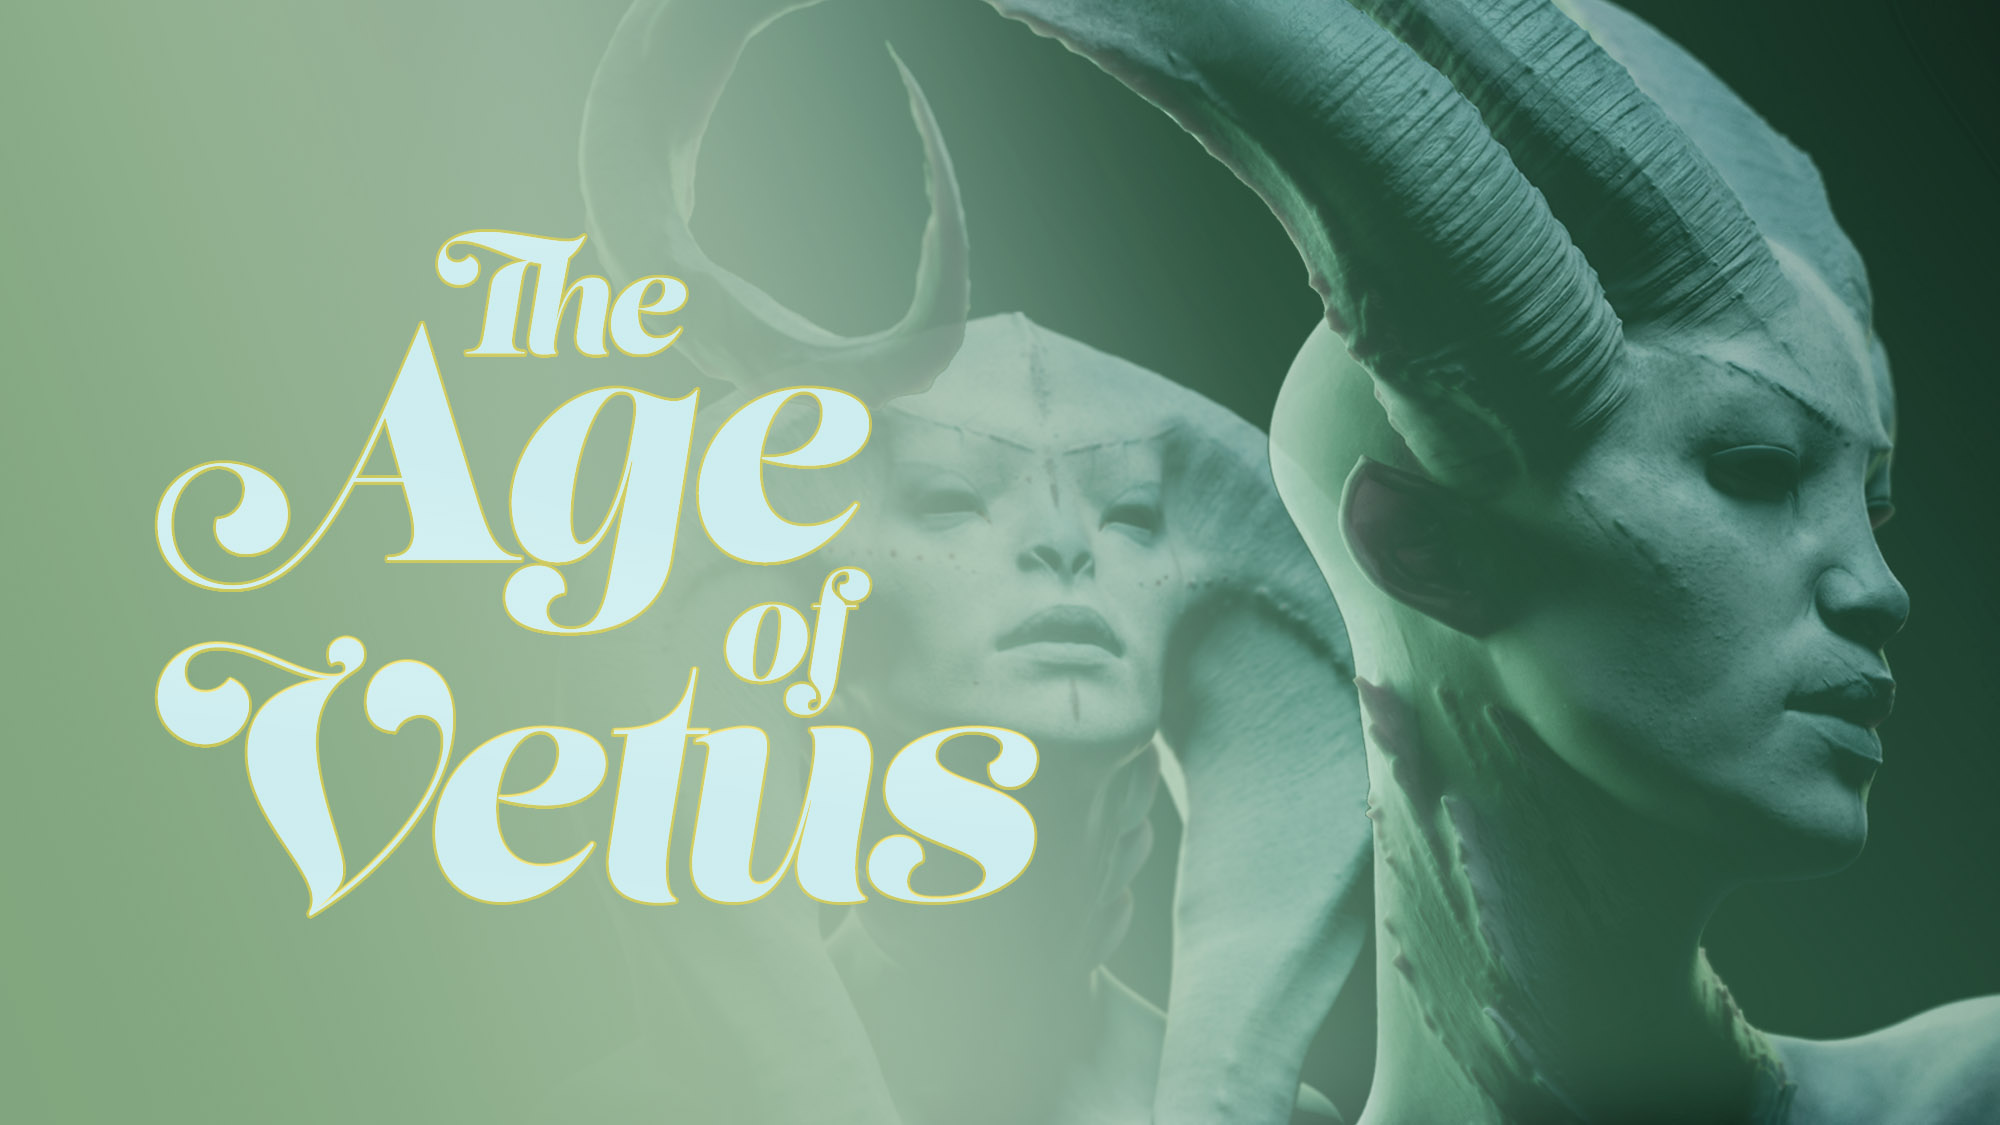 THe age of Vetus